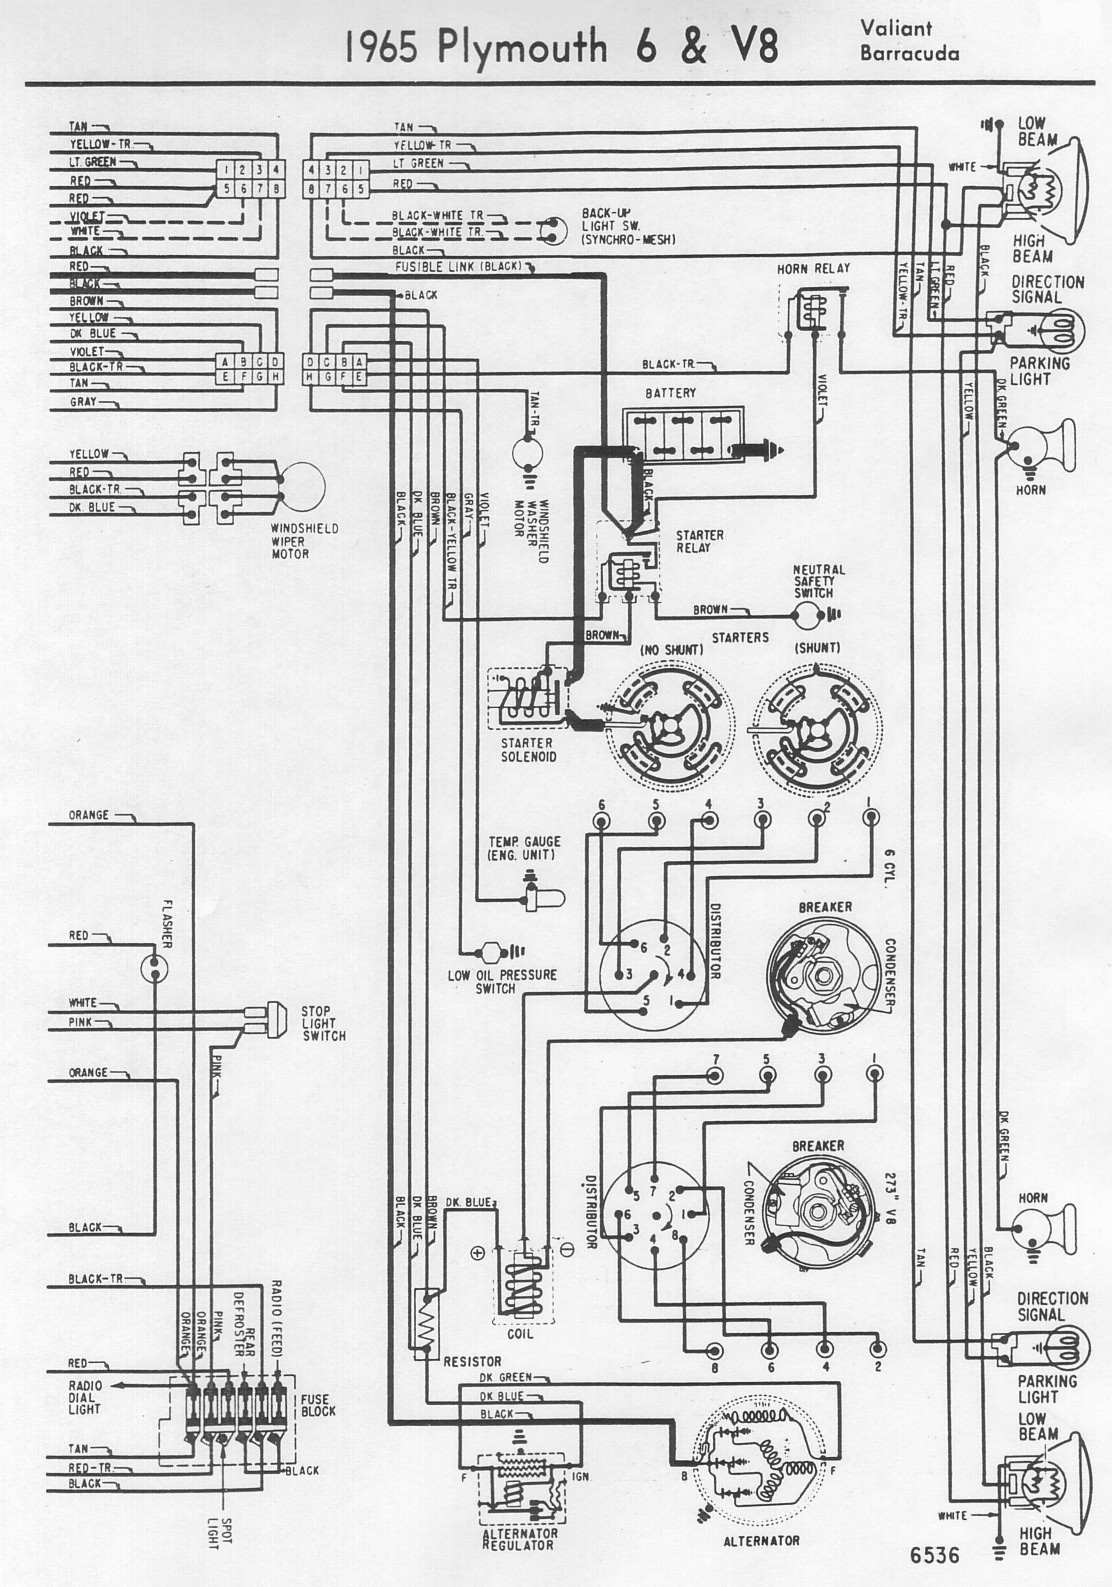 DIAGRAM] 67 Plymouth Barracuda Wiring Diagram FULL Version HD Quality Wiring  Diagram - V58O.EUROLYMPIQUES.FRv58o.eurolympiques.fr